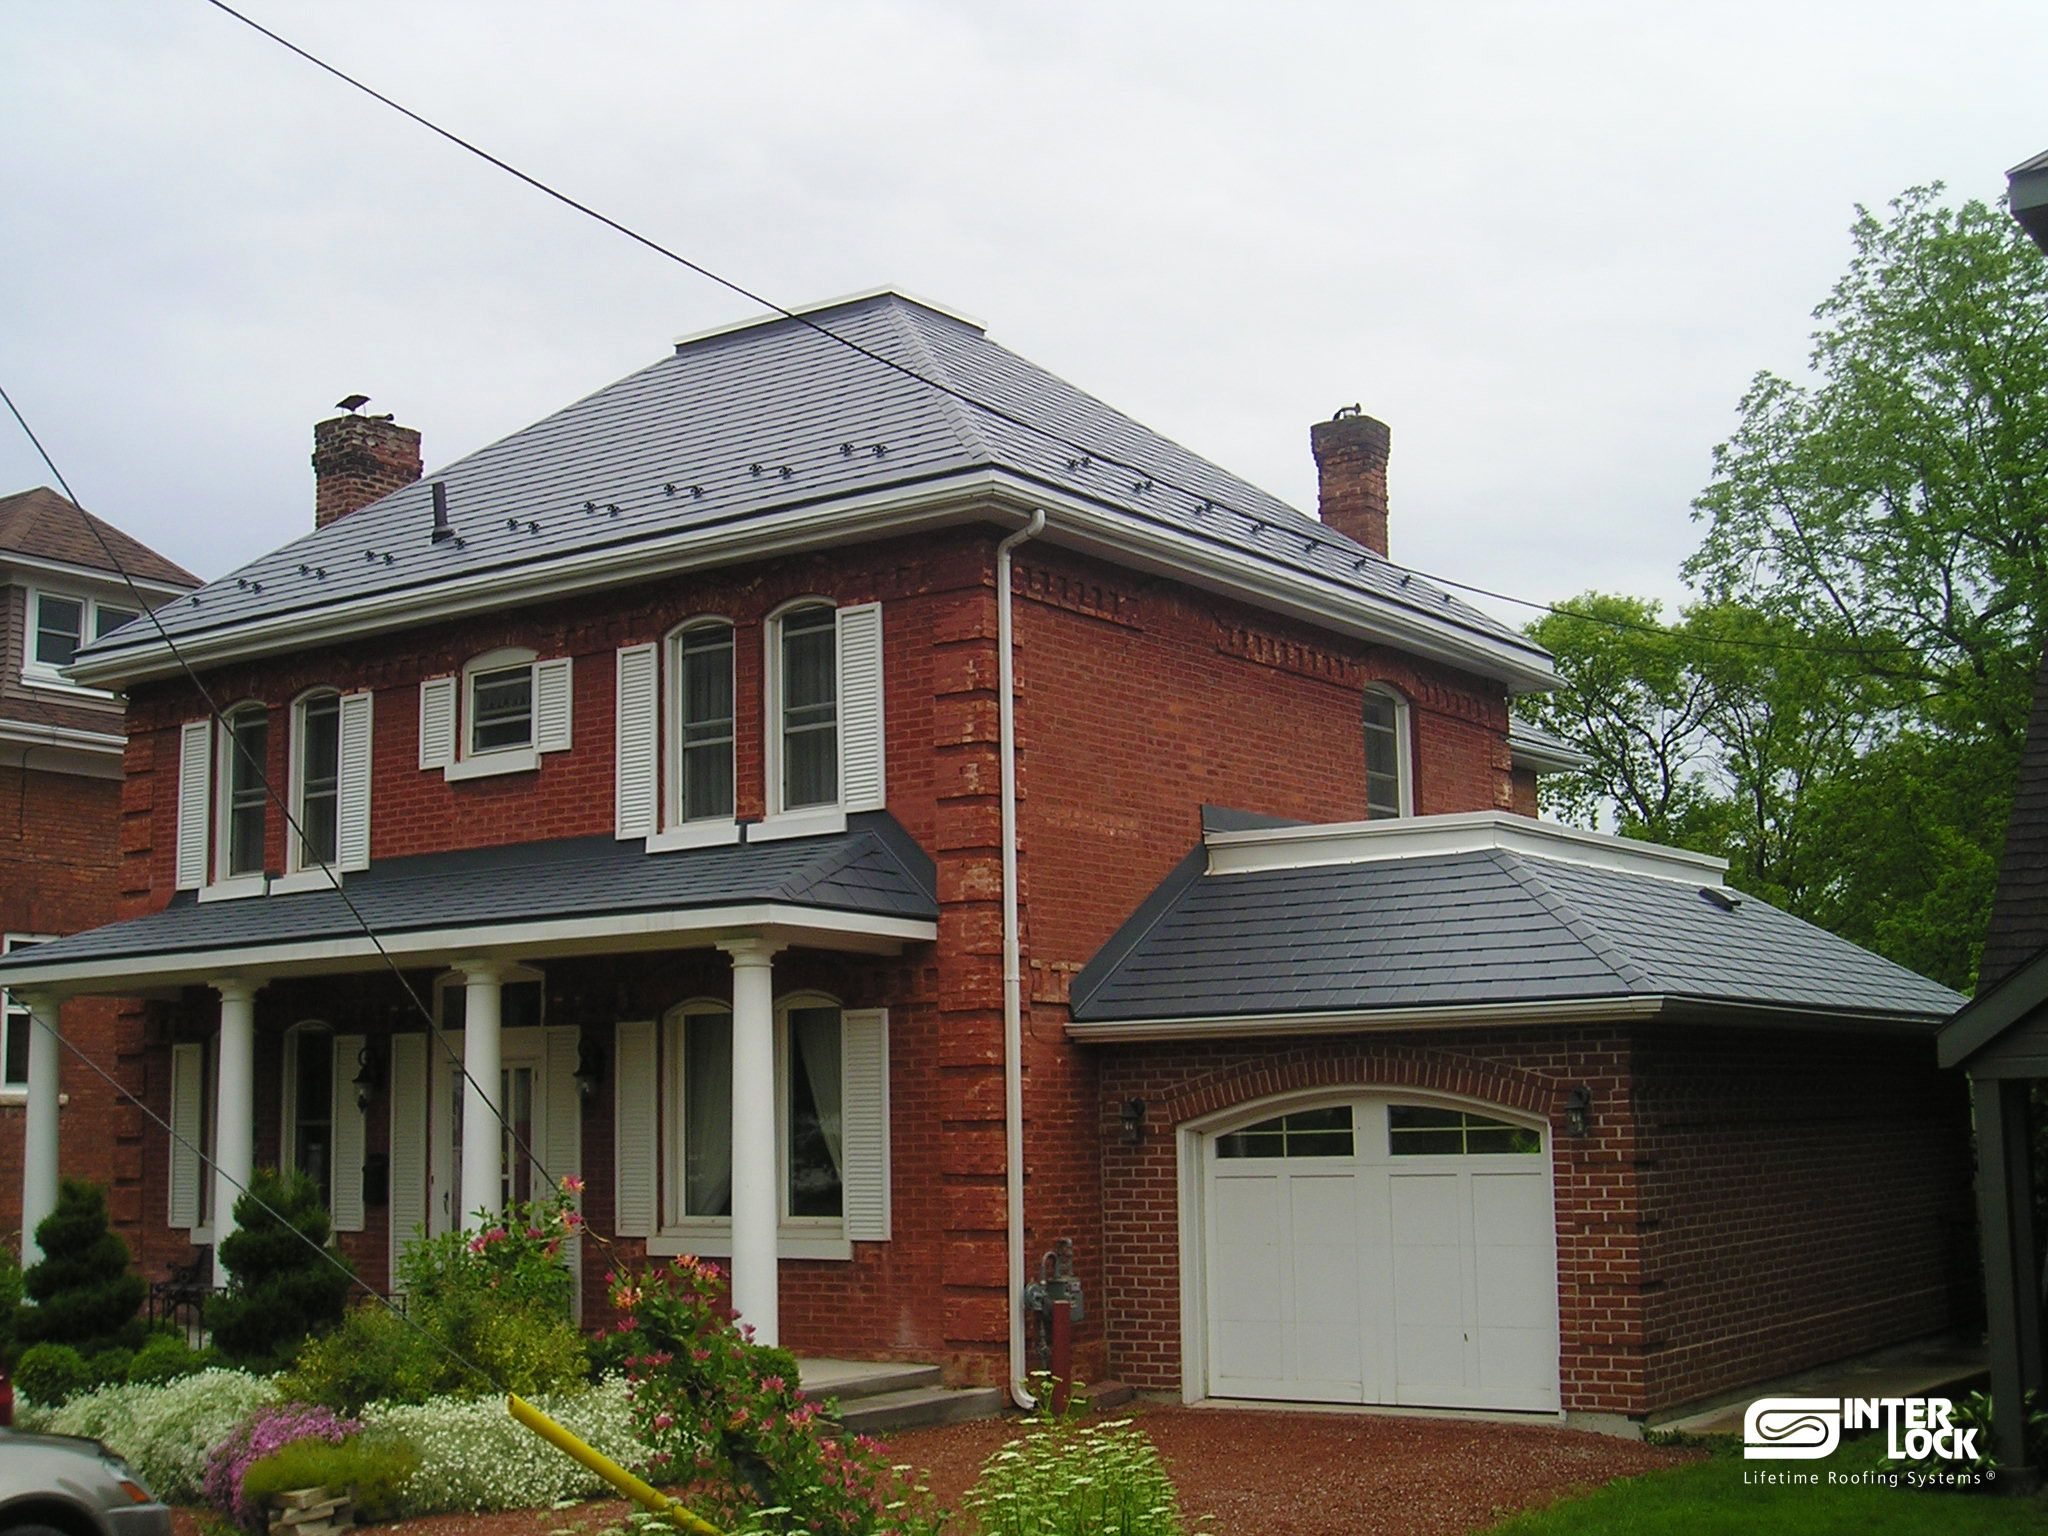 Interlock Metal Roofing Never Re Roof Again Advantages Of Solar Energy Buy Solar Panels Metal Roof